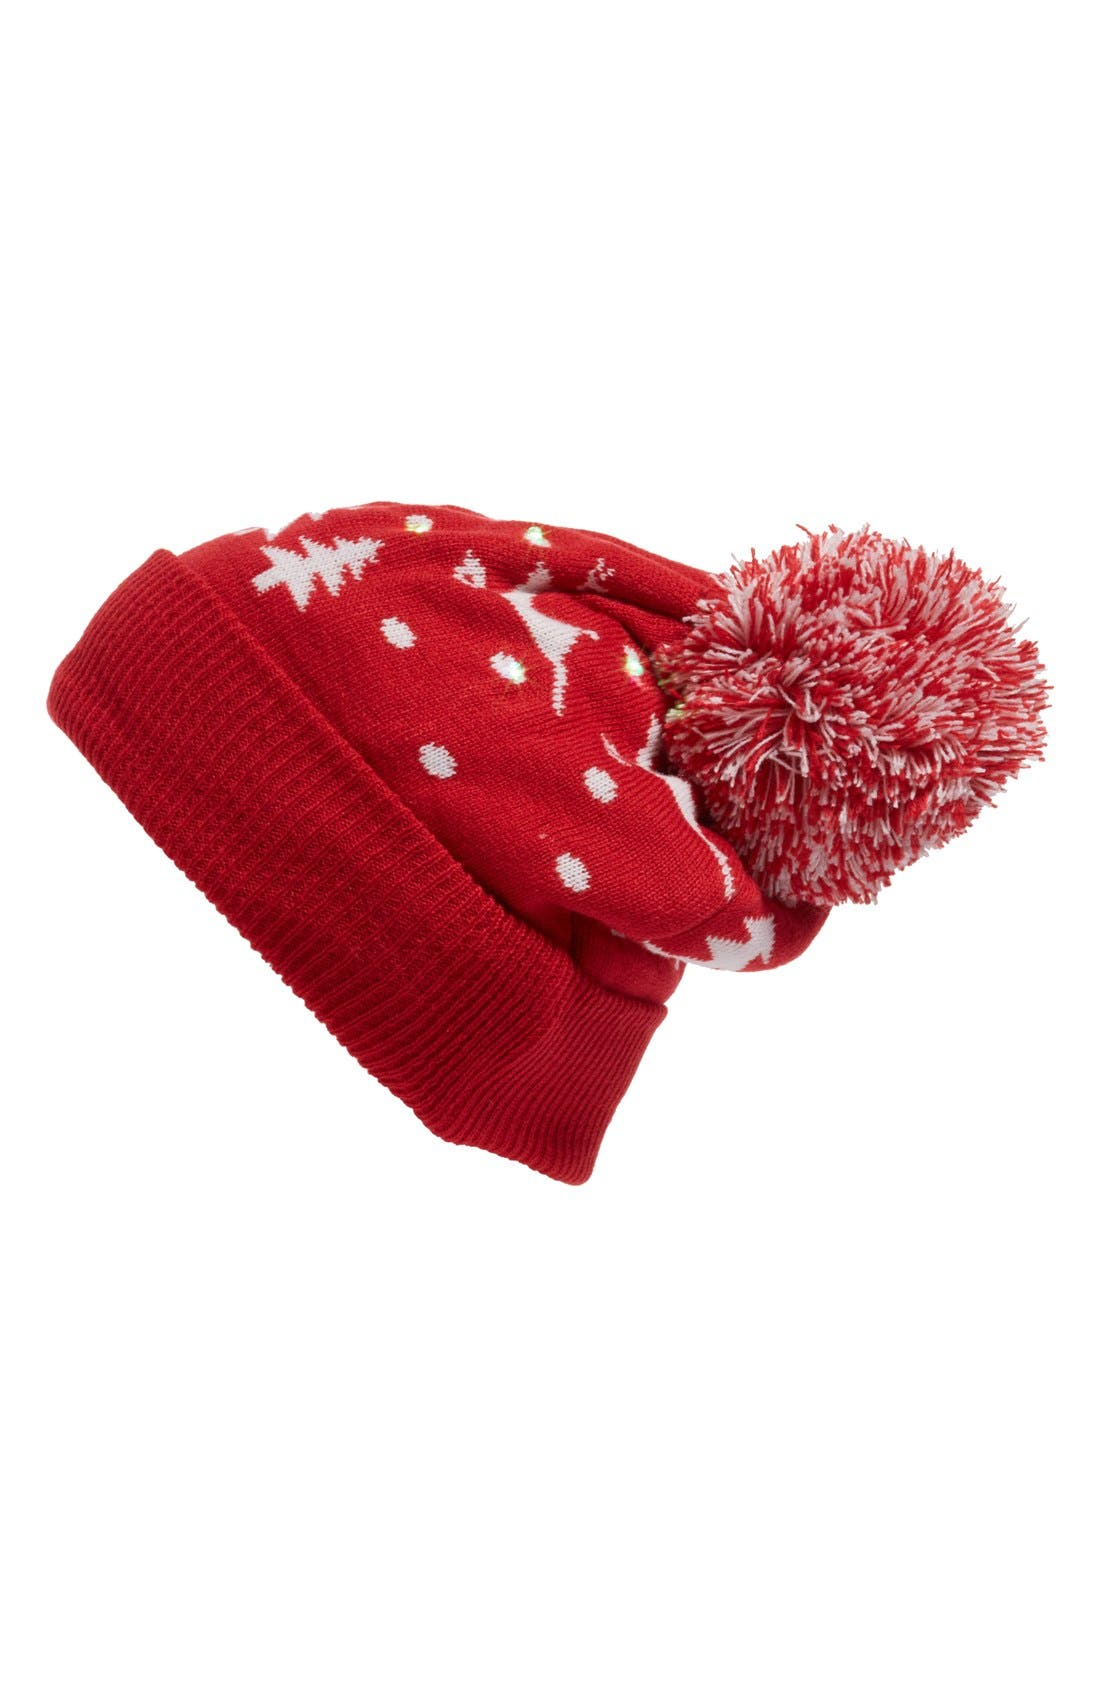 Alternate Image 1 Selected - Collection XIIX Snowy Lights Beanie